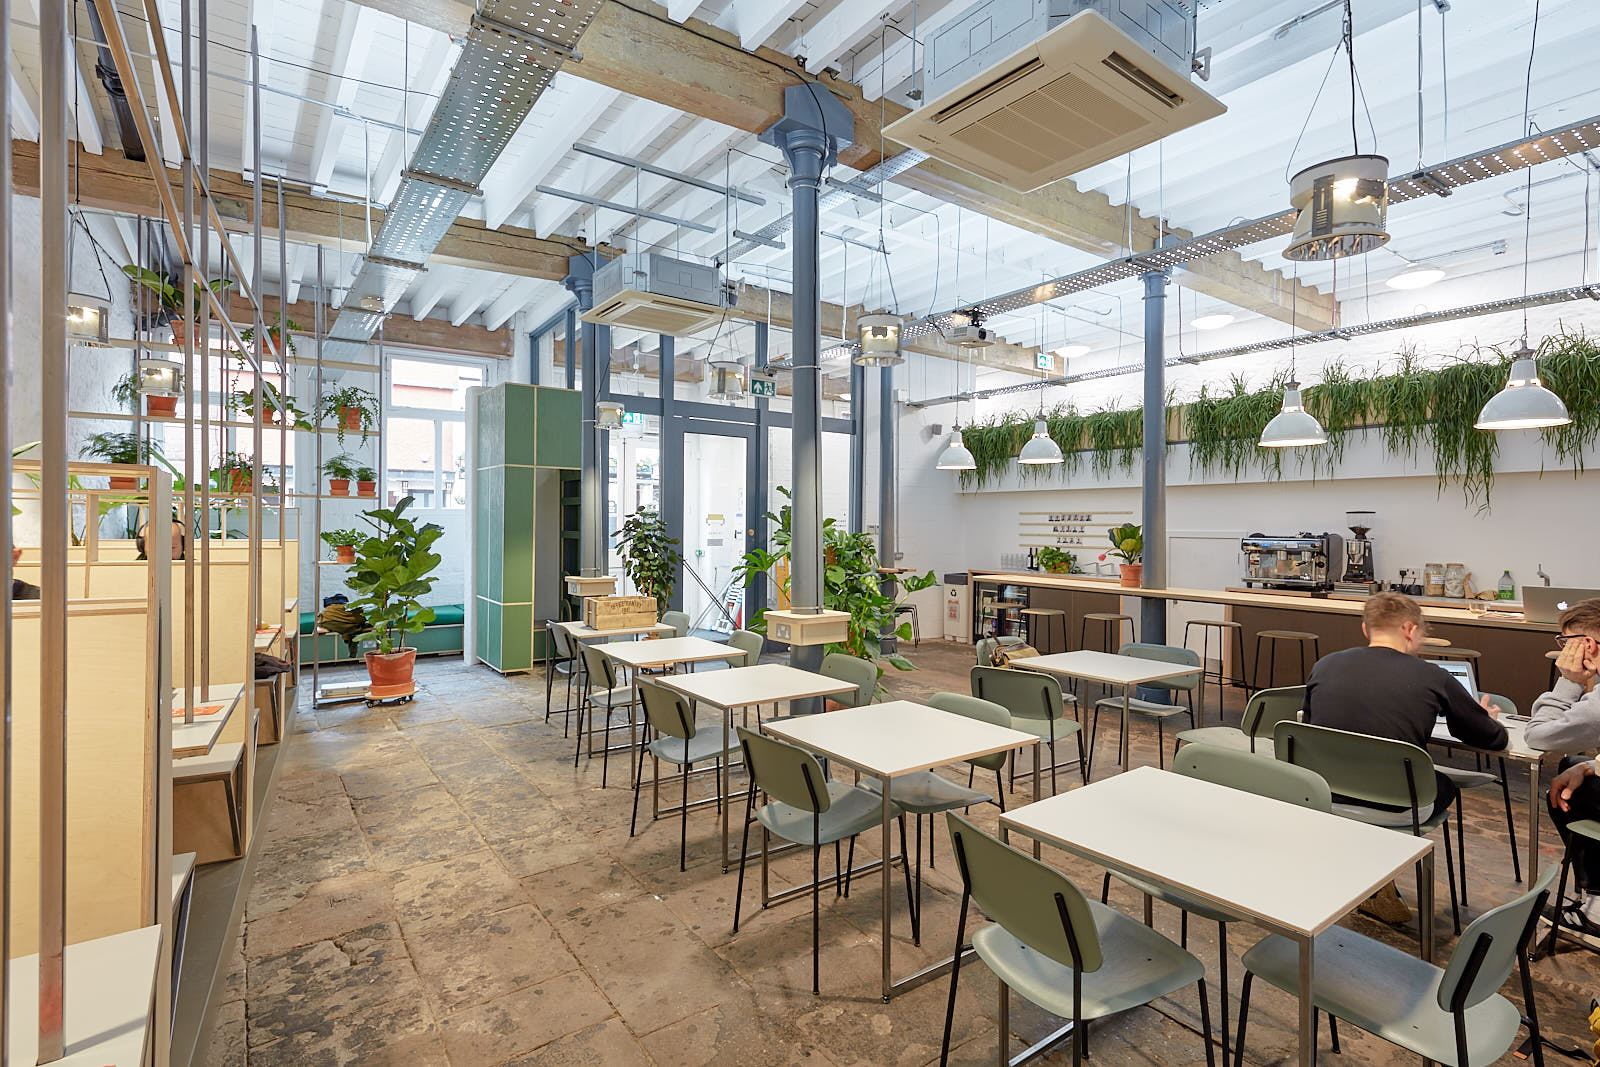 THe changing workplace; bristol - Bristol CREation host their second event with a panel of industry experts discussing the impact of the ever-changing dynamic of modern work spaces. Sponsored by Interaction.When: 26th September 2019 6 - 8 pmWhere: Framework, 35 King Street, Bristol BS1 4DZ